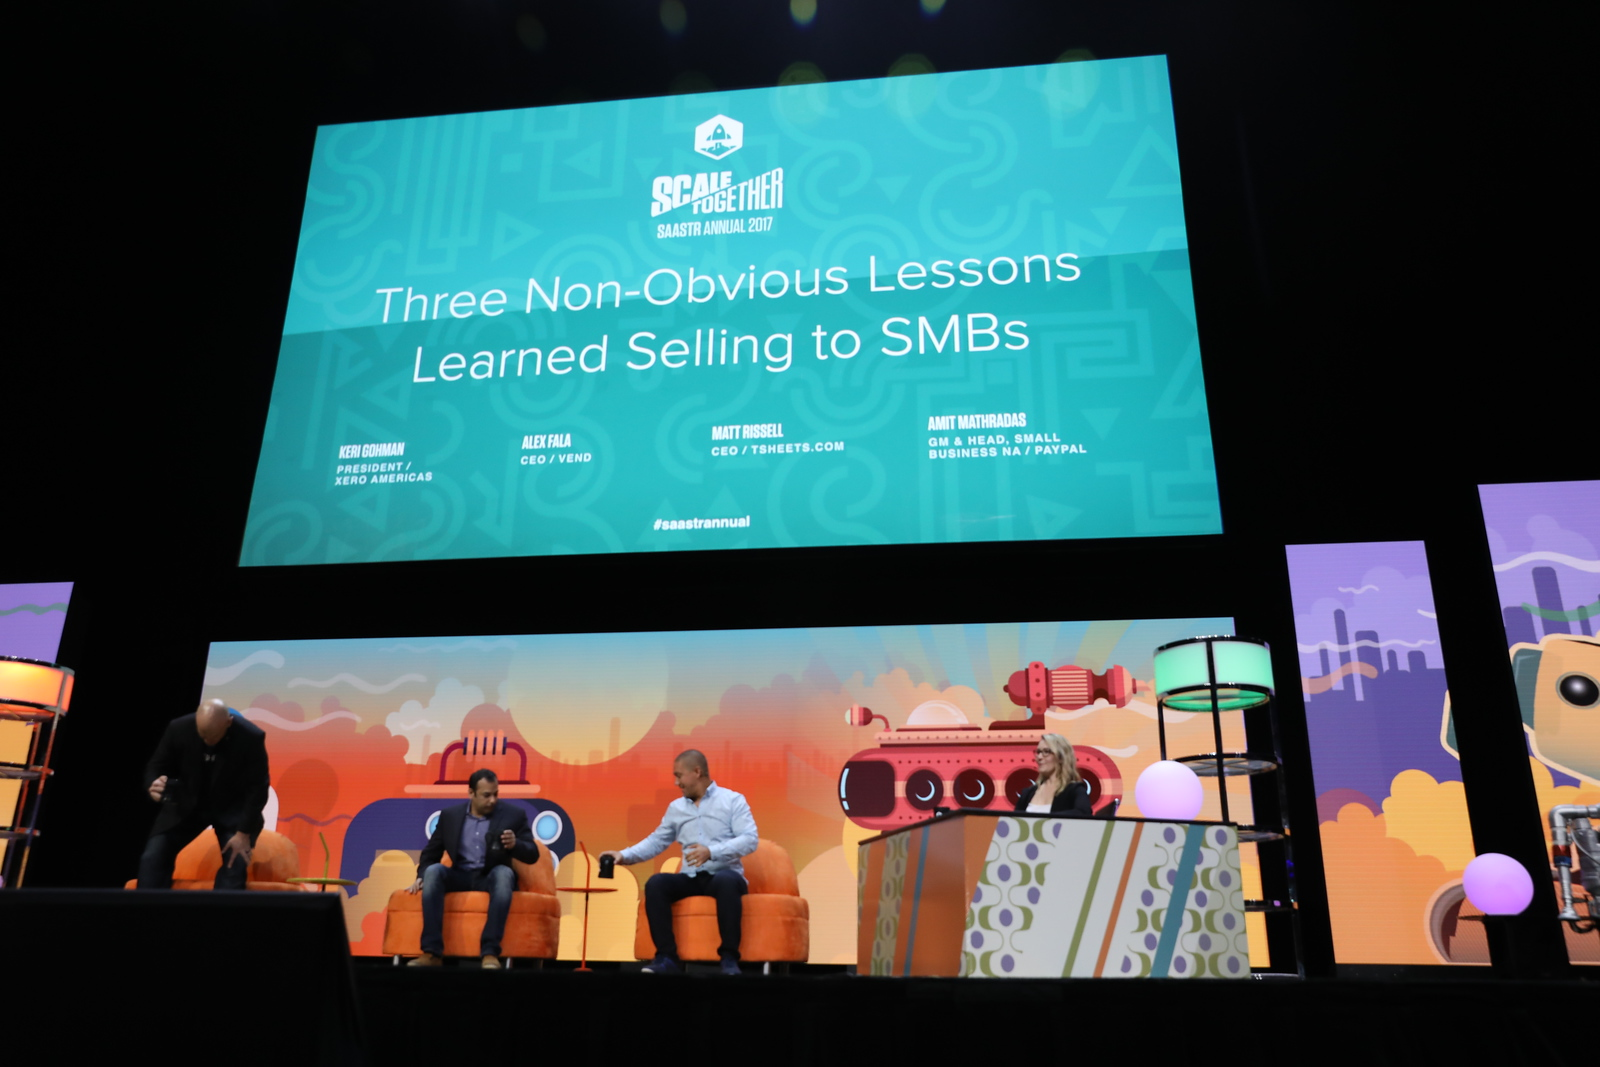 Three Non-Obvious Lessons Learned Selling to SMBs Keri Gohman PRESIDENT / AMERICAS AT XERO  Alex Fala CEO / VEND Matt Rissell CEO / TSHEETS.COM  Amit Mathradas GM & HEAD,SMALL BUSINESS NA / PAYPAL